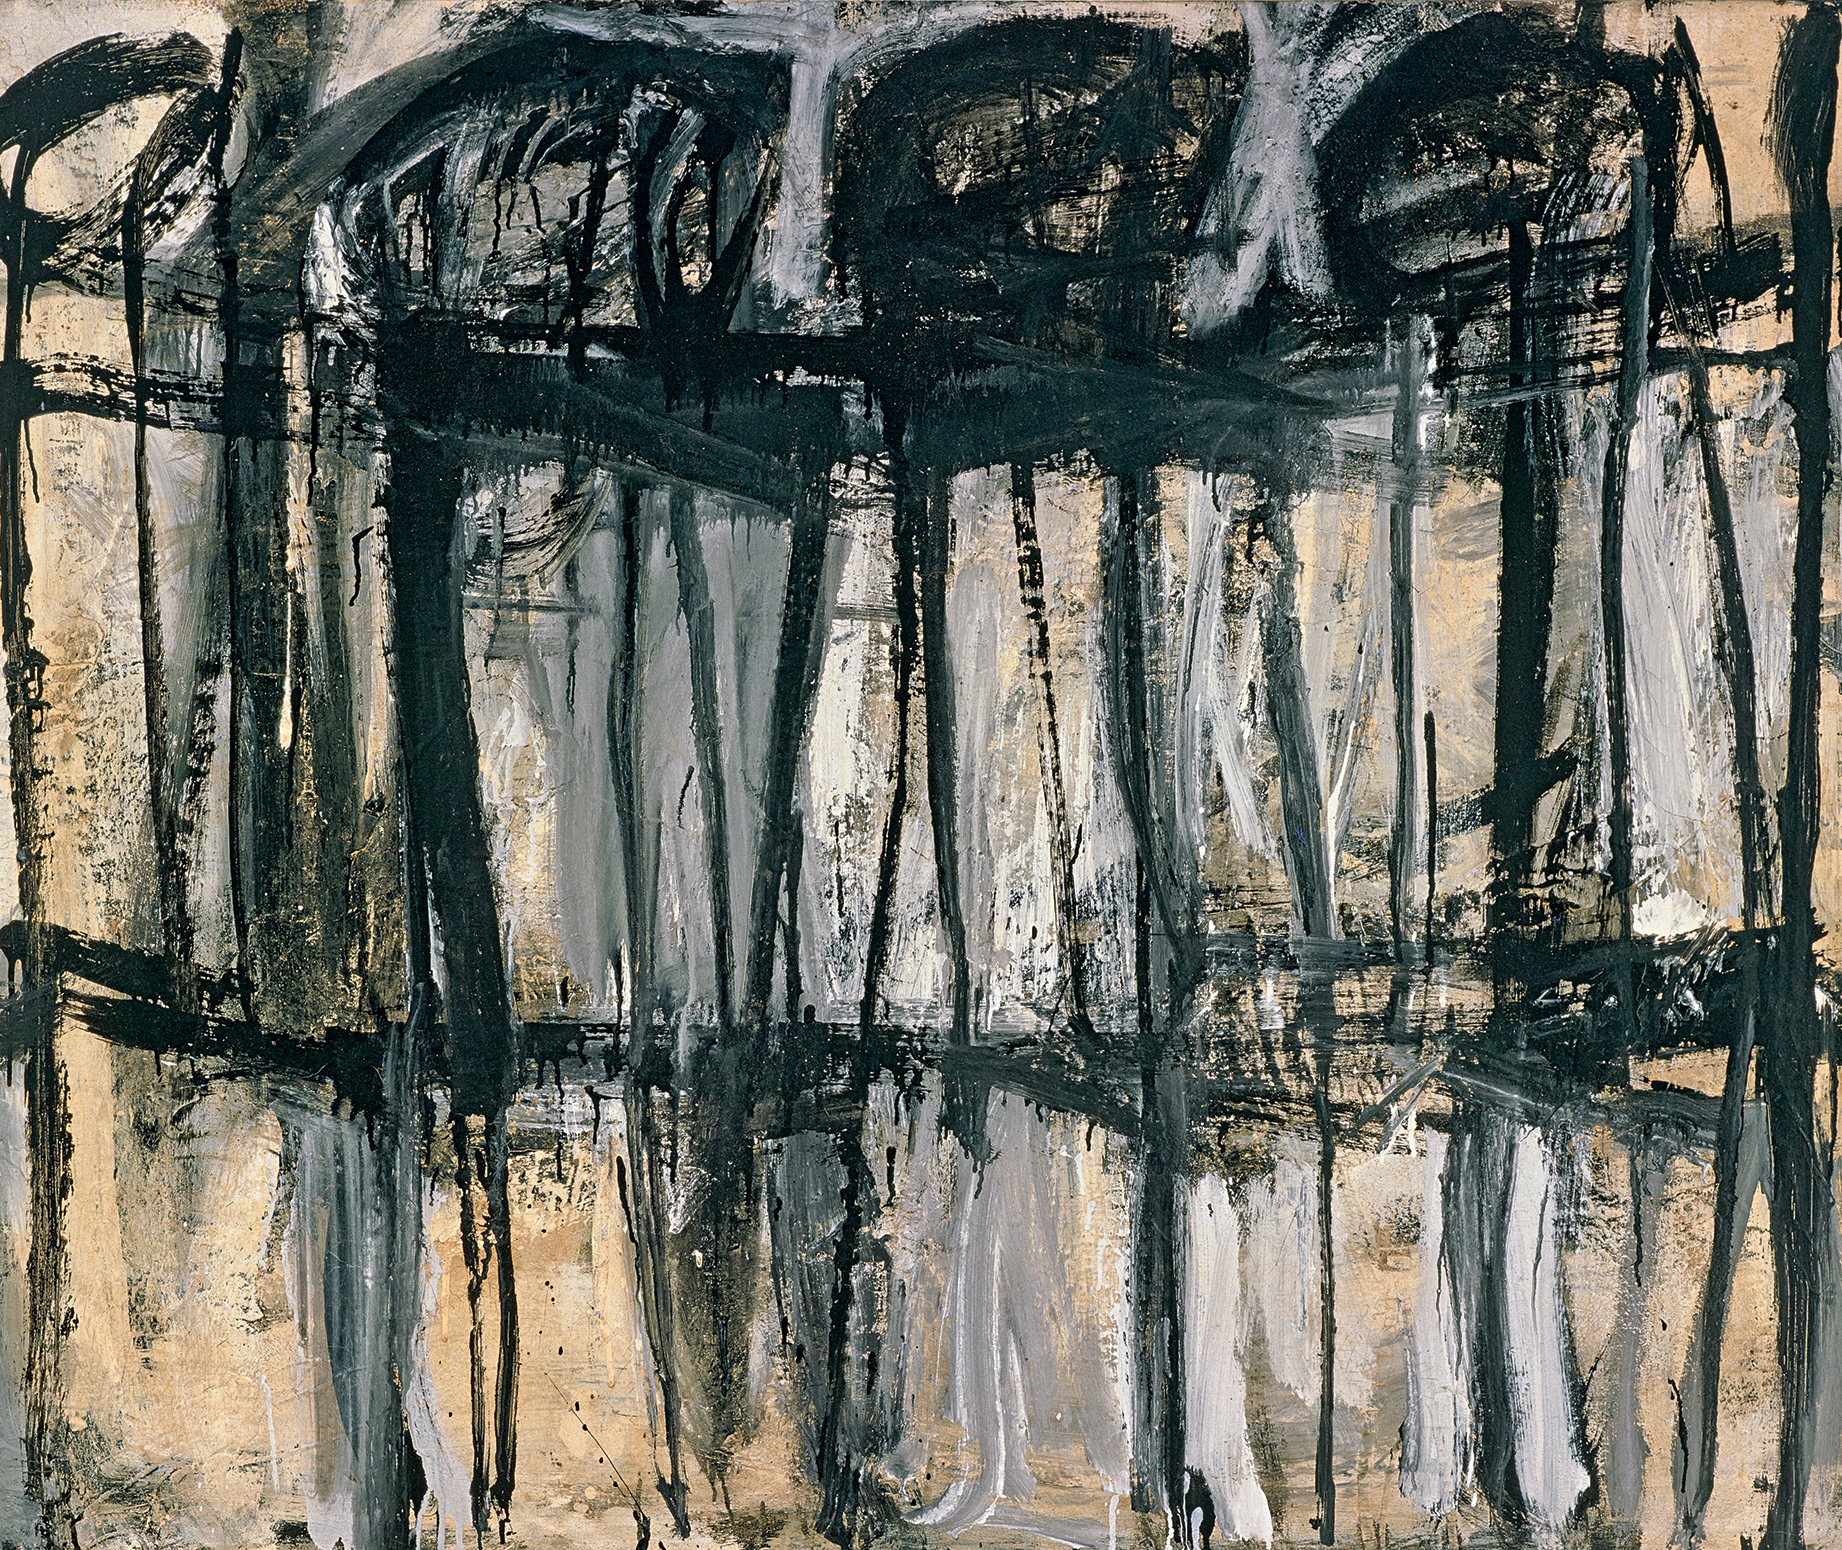 Untitled (Lexington) (1951), by Cy Twombly. Industrial paint on canvas, 101.6 x 121.9 cm. Cy Twombly Foundation. © Cy Twombly Foundation, courtesy Archives Nicola Del Roscio.